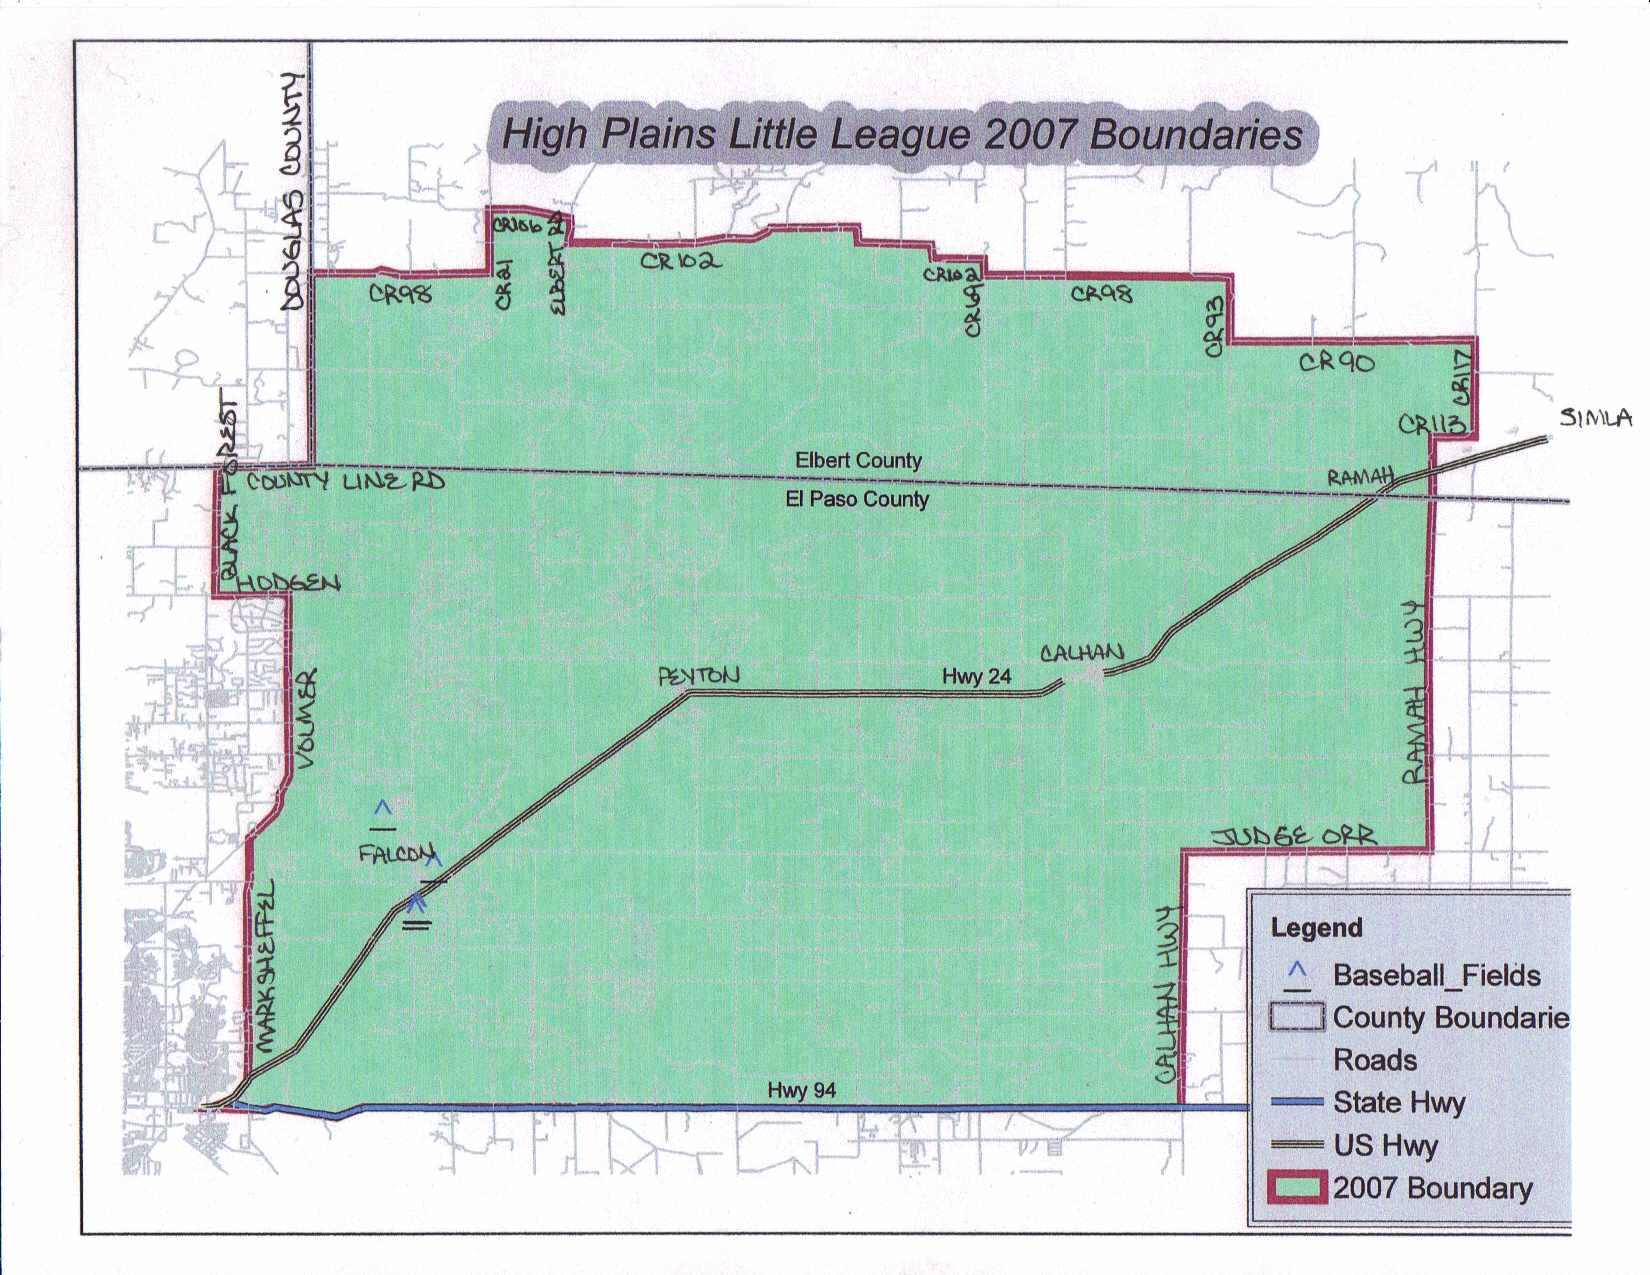 HPLL Boundaries Map